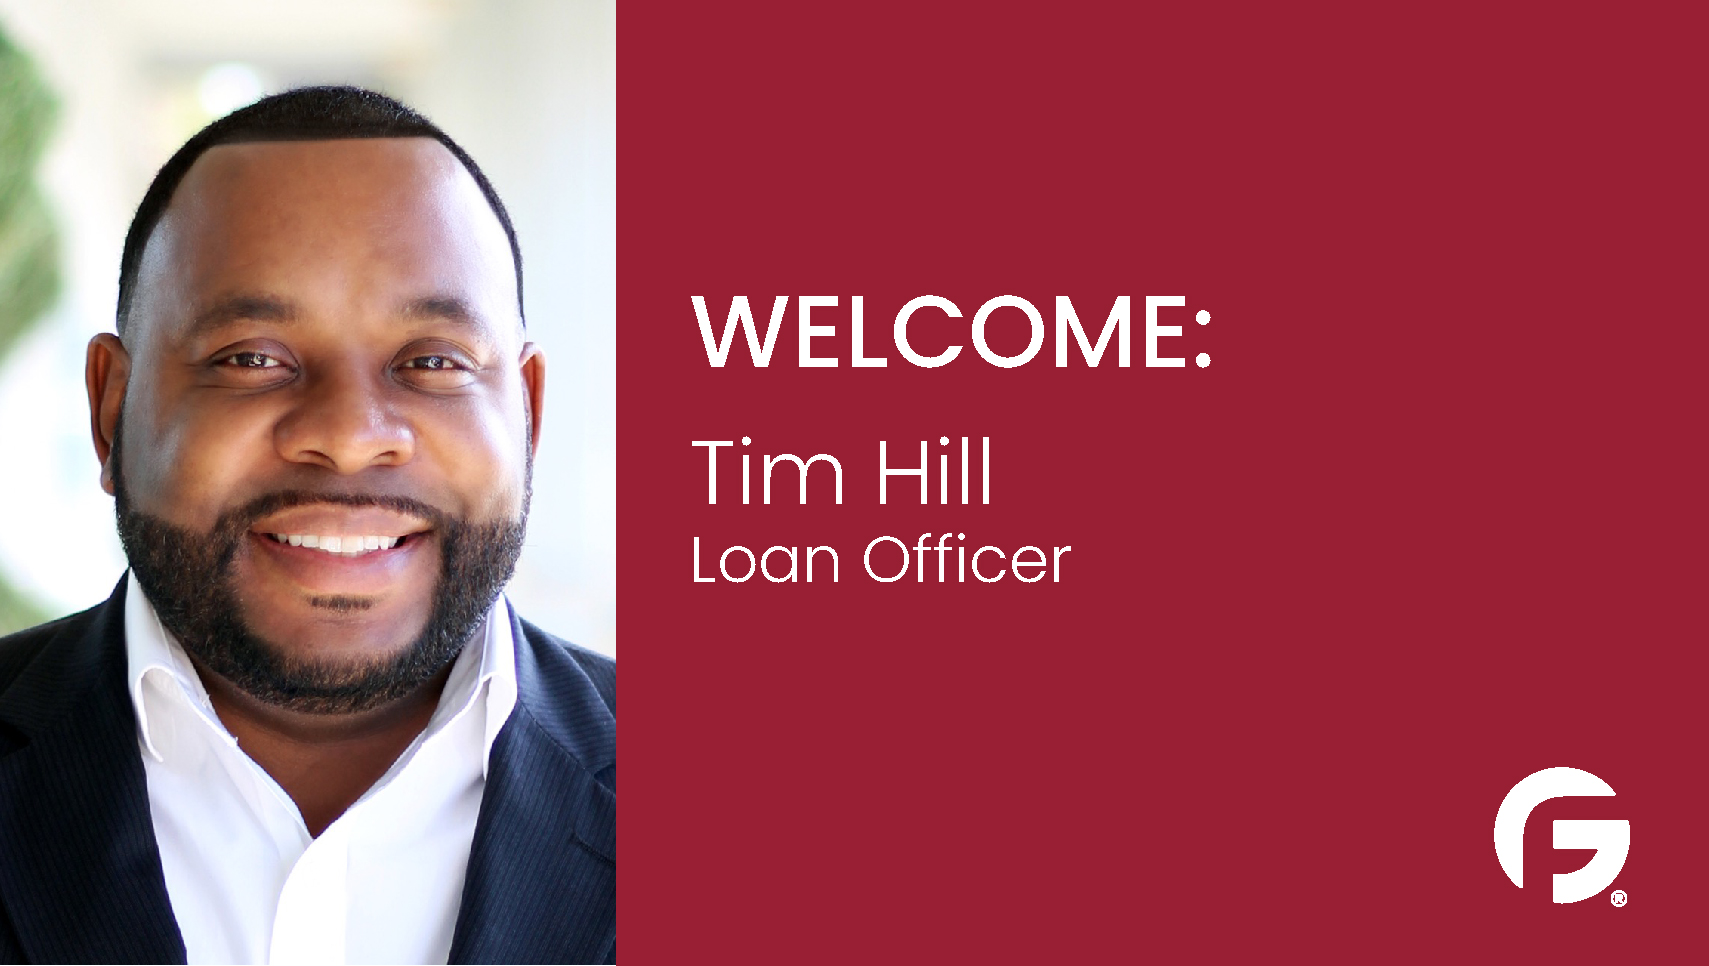 Tim Hill, Loan Officer, serving the state of Texas